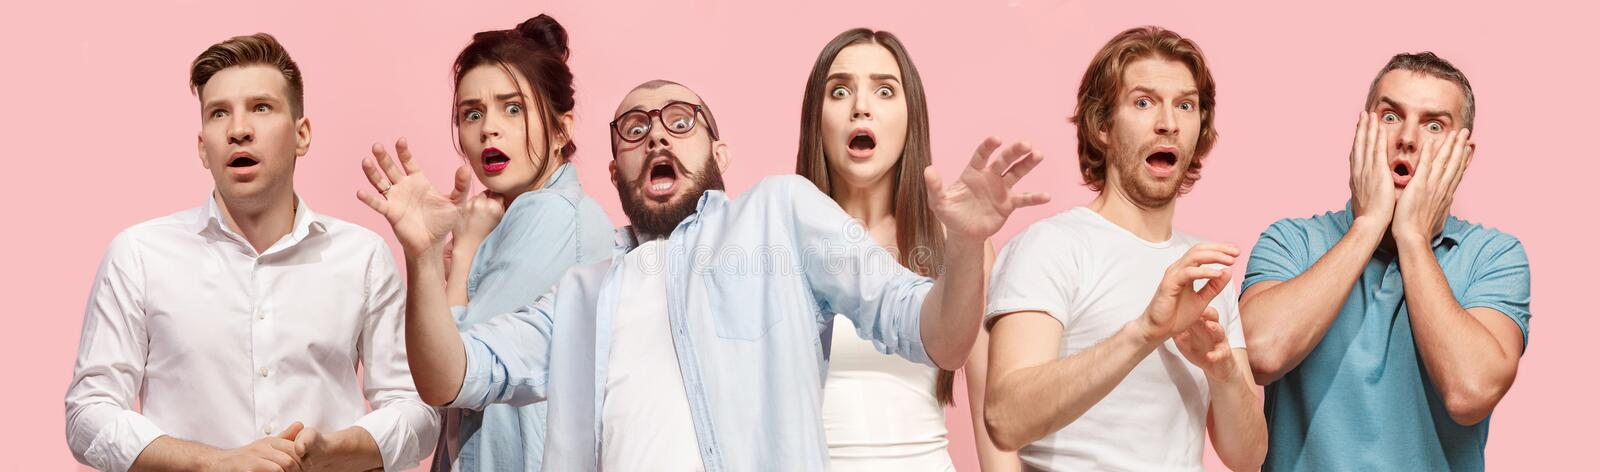 Portrait of the scared women and men on pink. I`m afraid. Fright. Portrait of the scared women and men. Business people standing isolated on trendy pink studio stock images